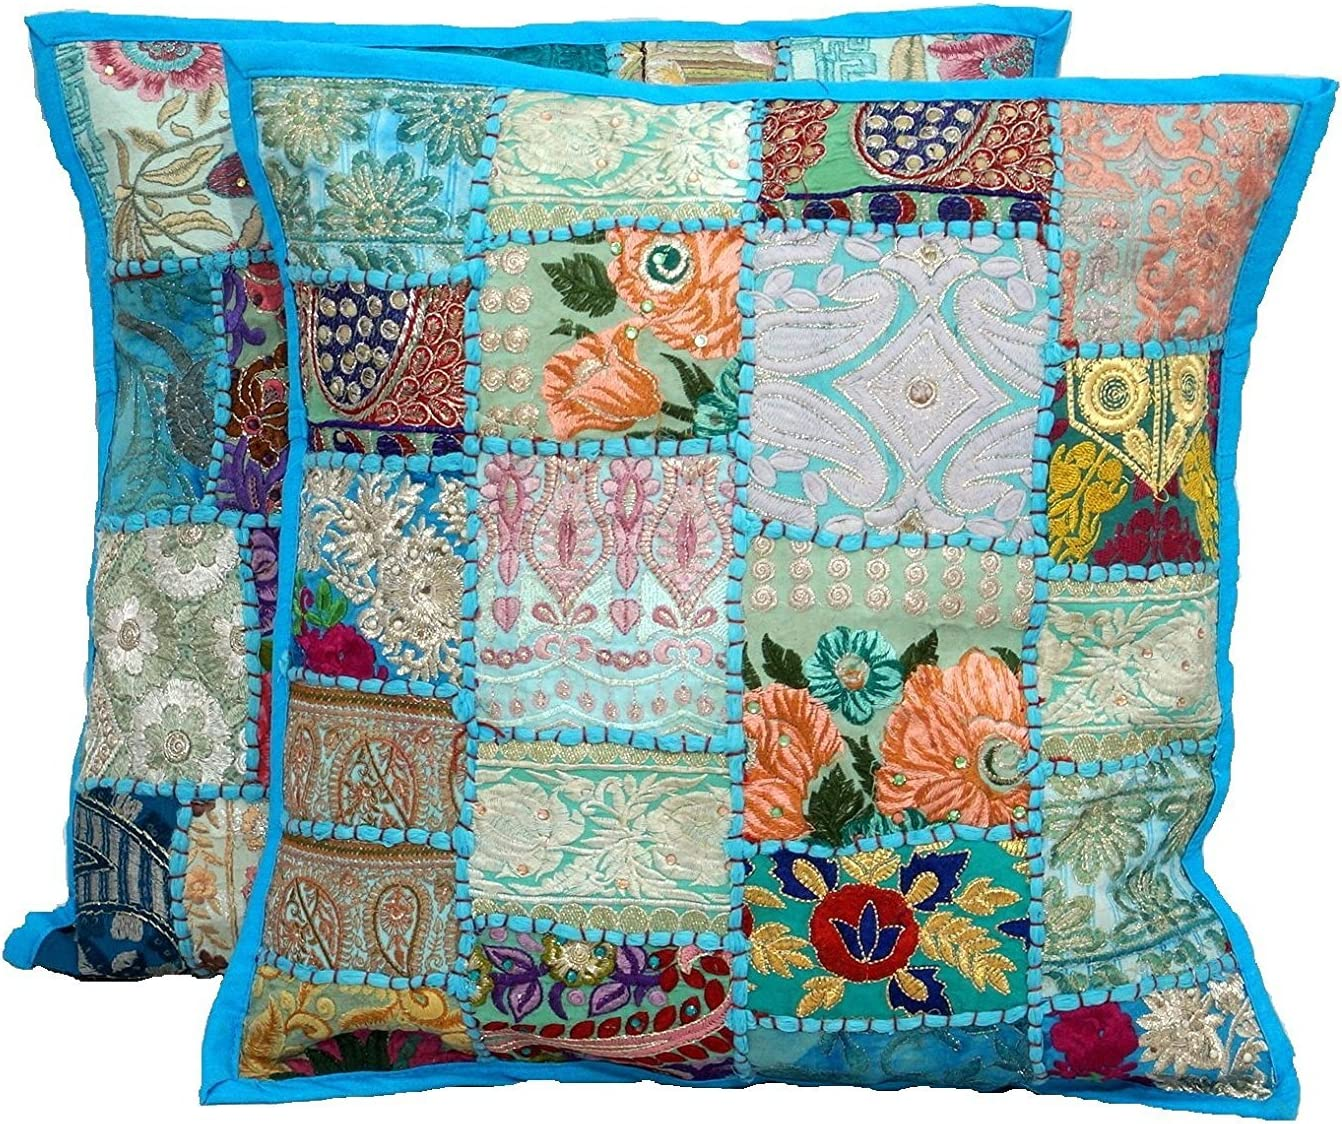 Hand Embroidered Patchwork Pillows Throw Indian Bedding Sofa Pillow Case Cover